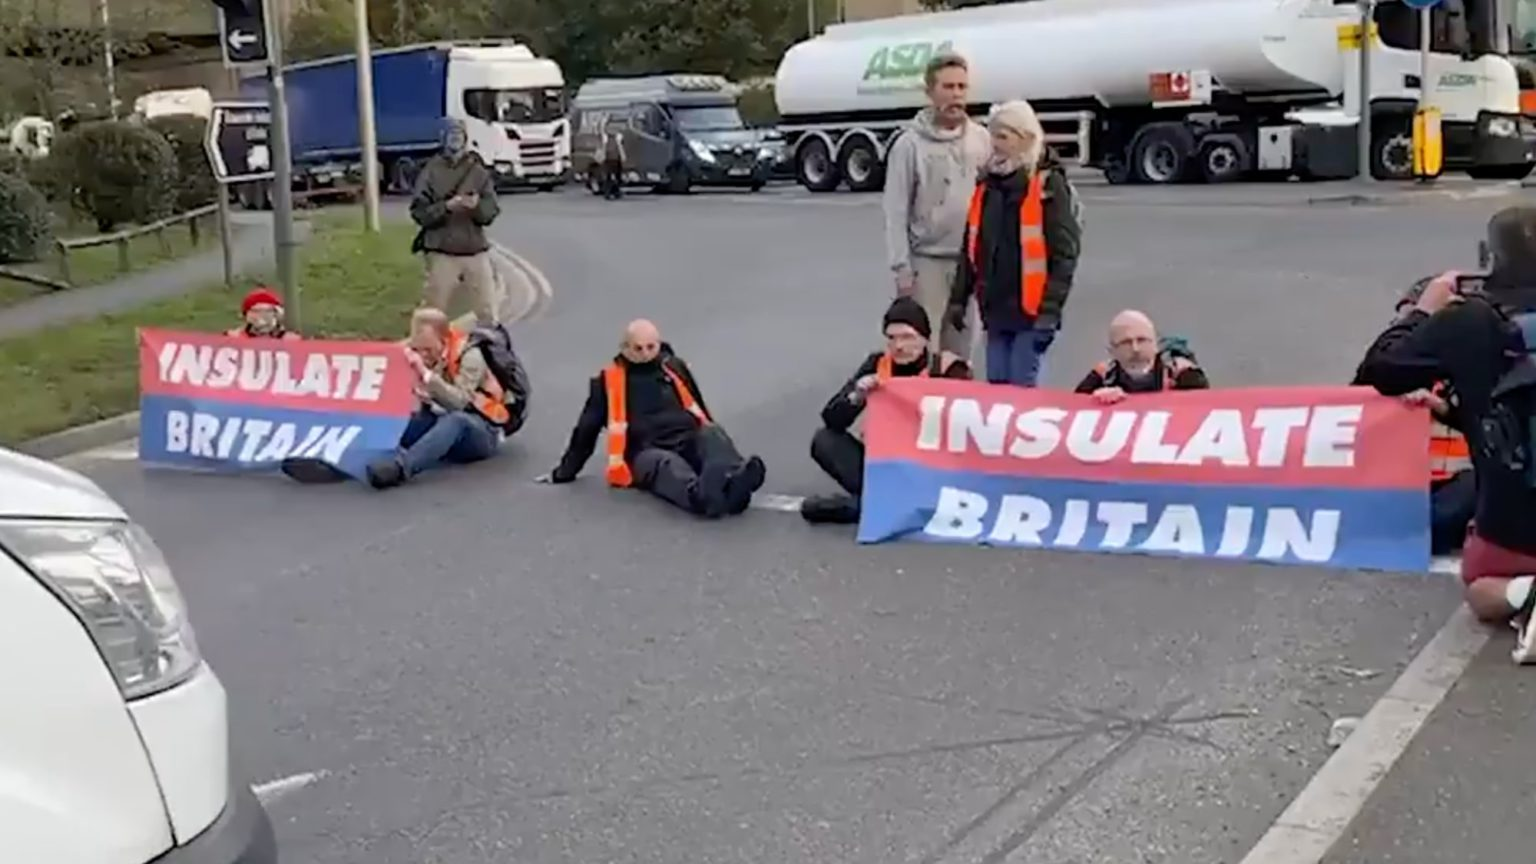 Insulate Britain is in bed with the establishment